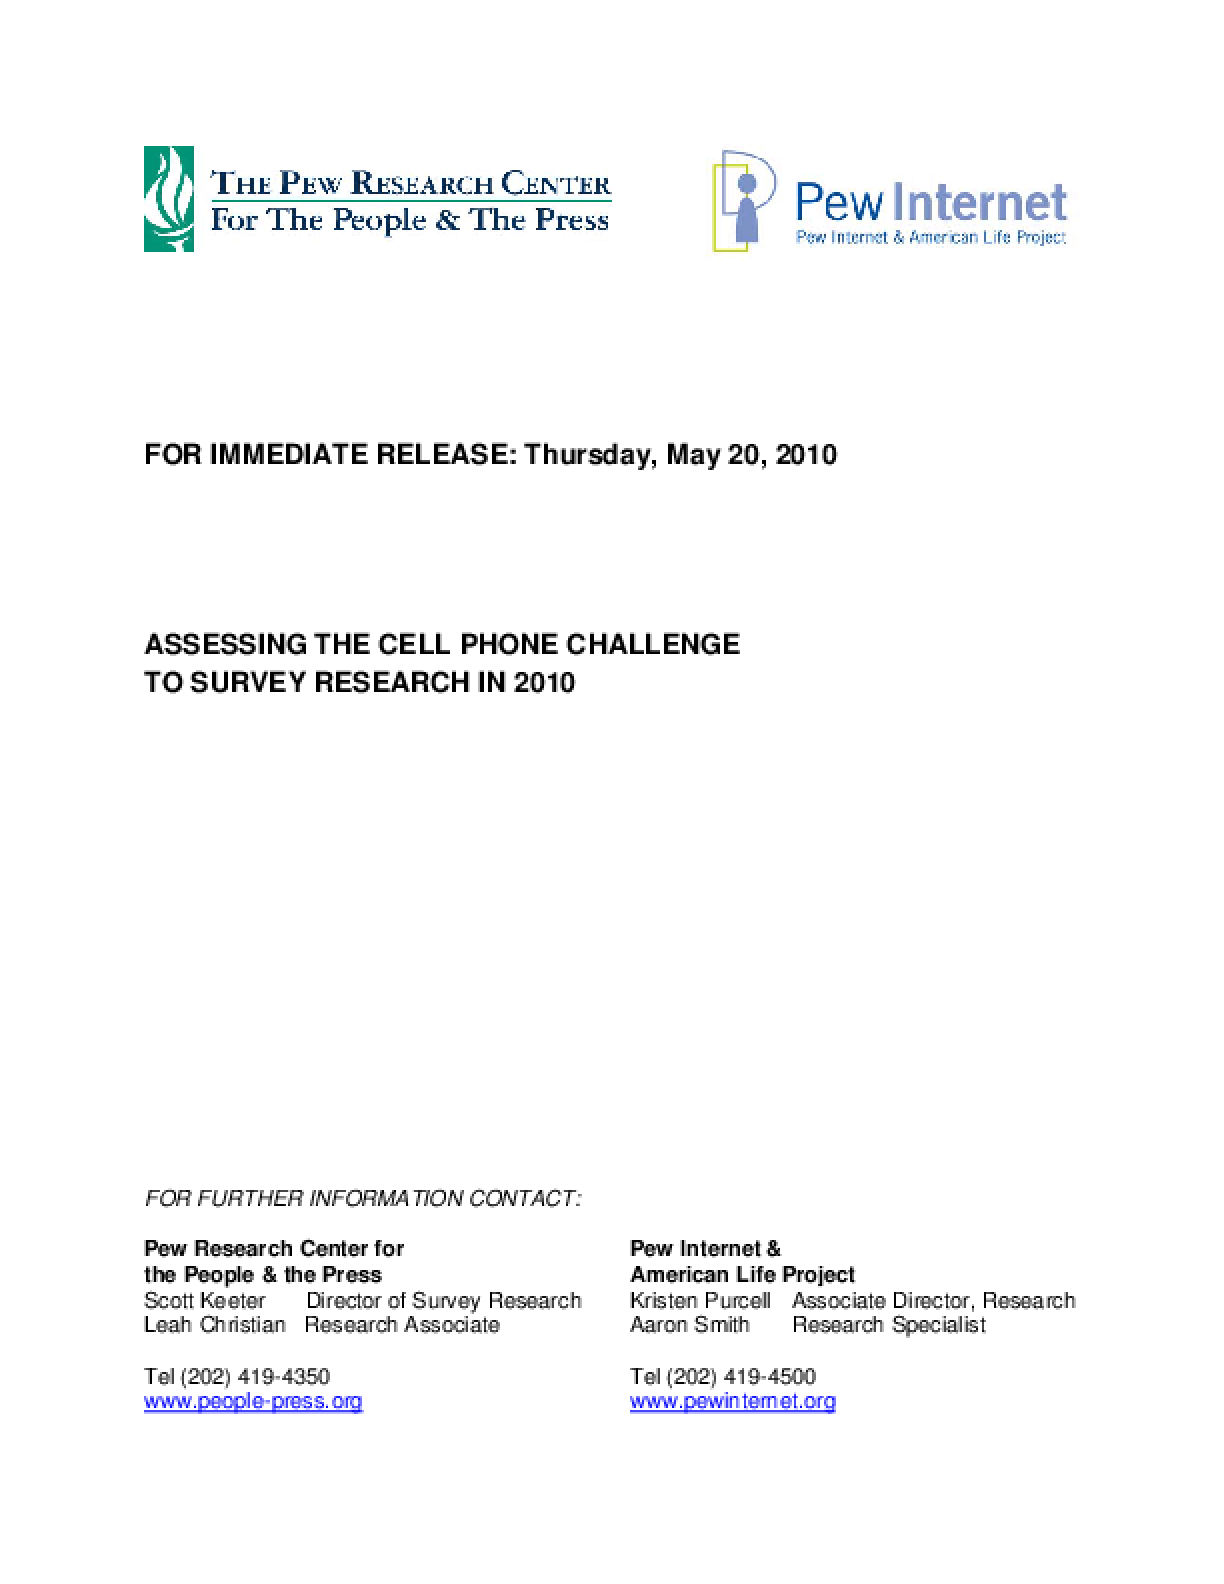 Assessing the Cell Phone Challenge to Survey Research in 2010